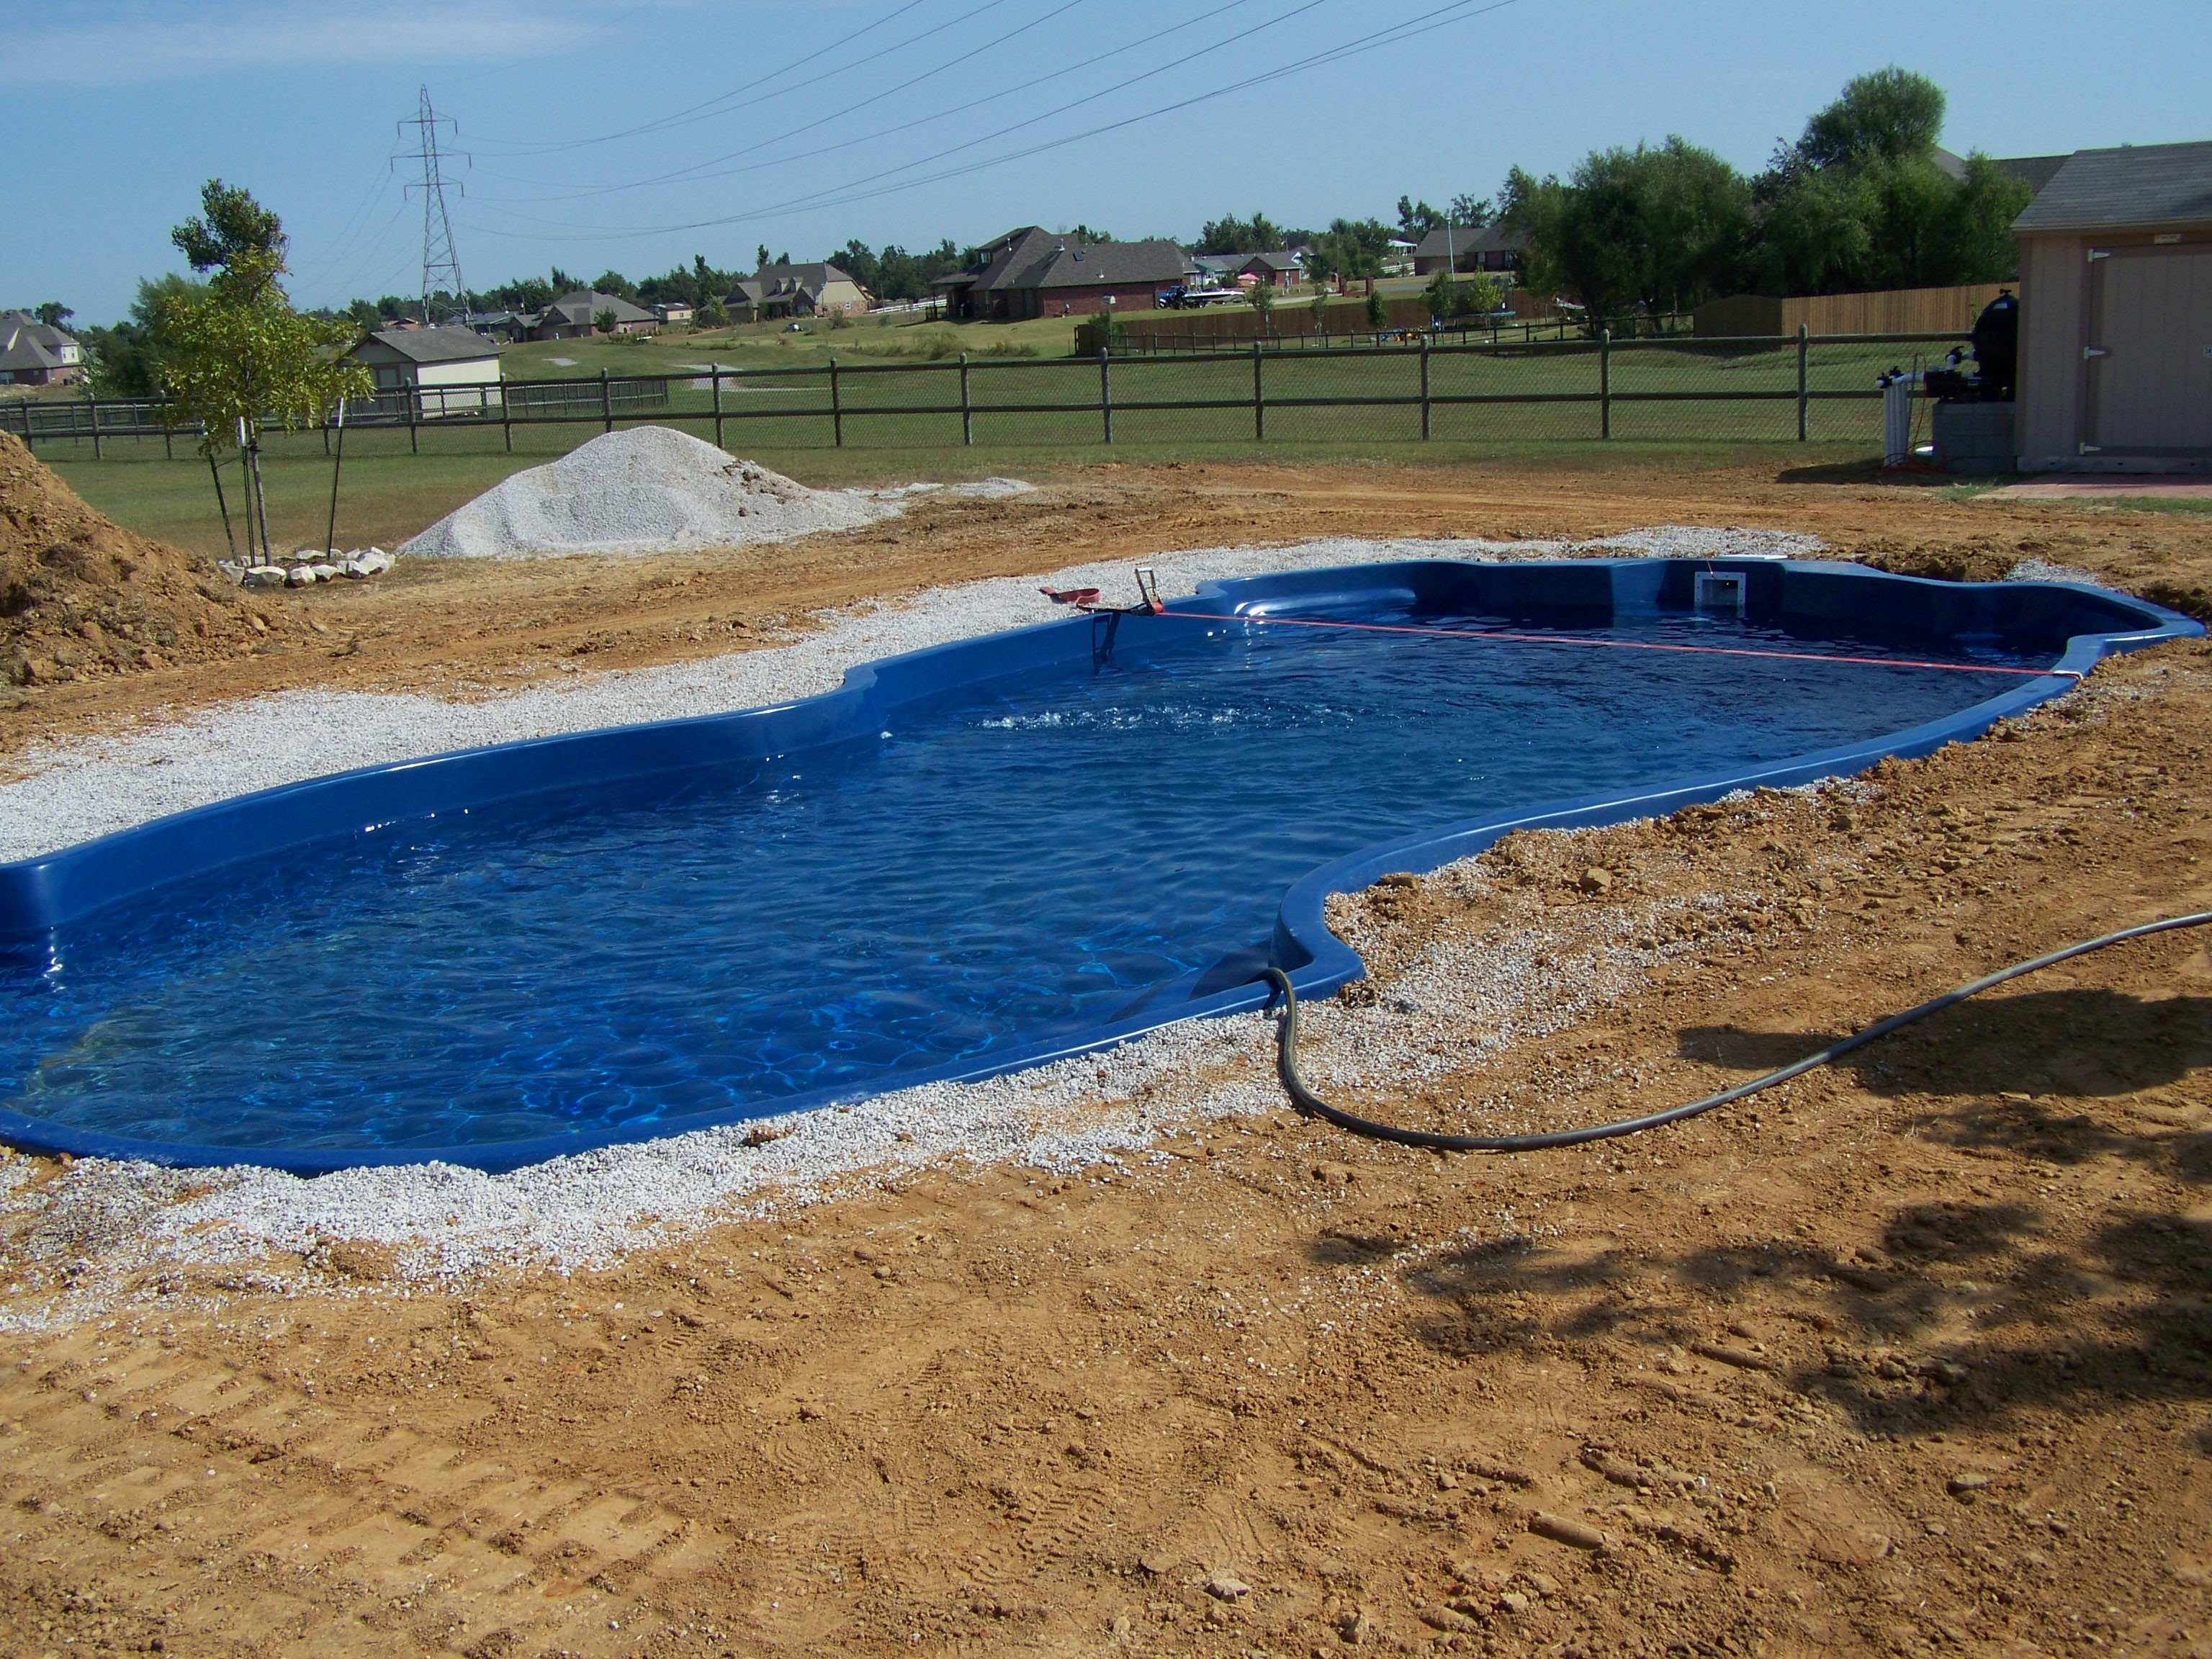 Fiberglass pool breaking ground swimming pool contractor - Swimming pool contractors oklahoma city ...